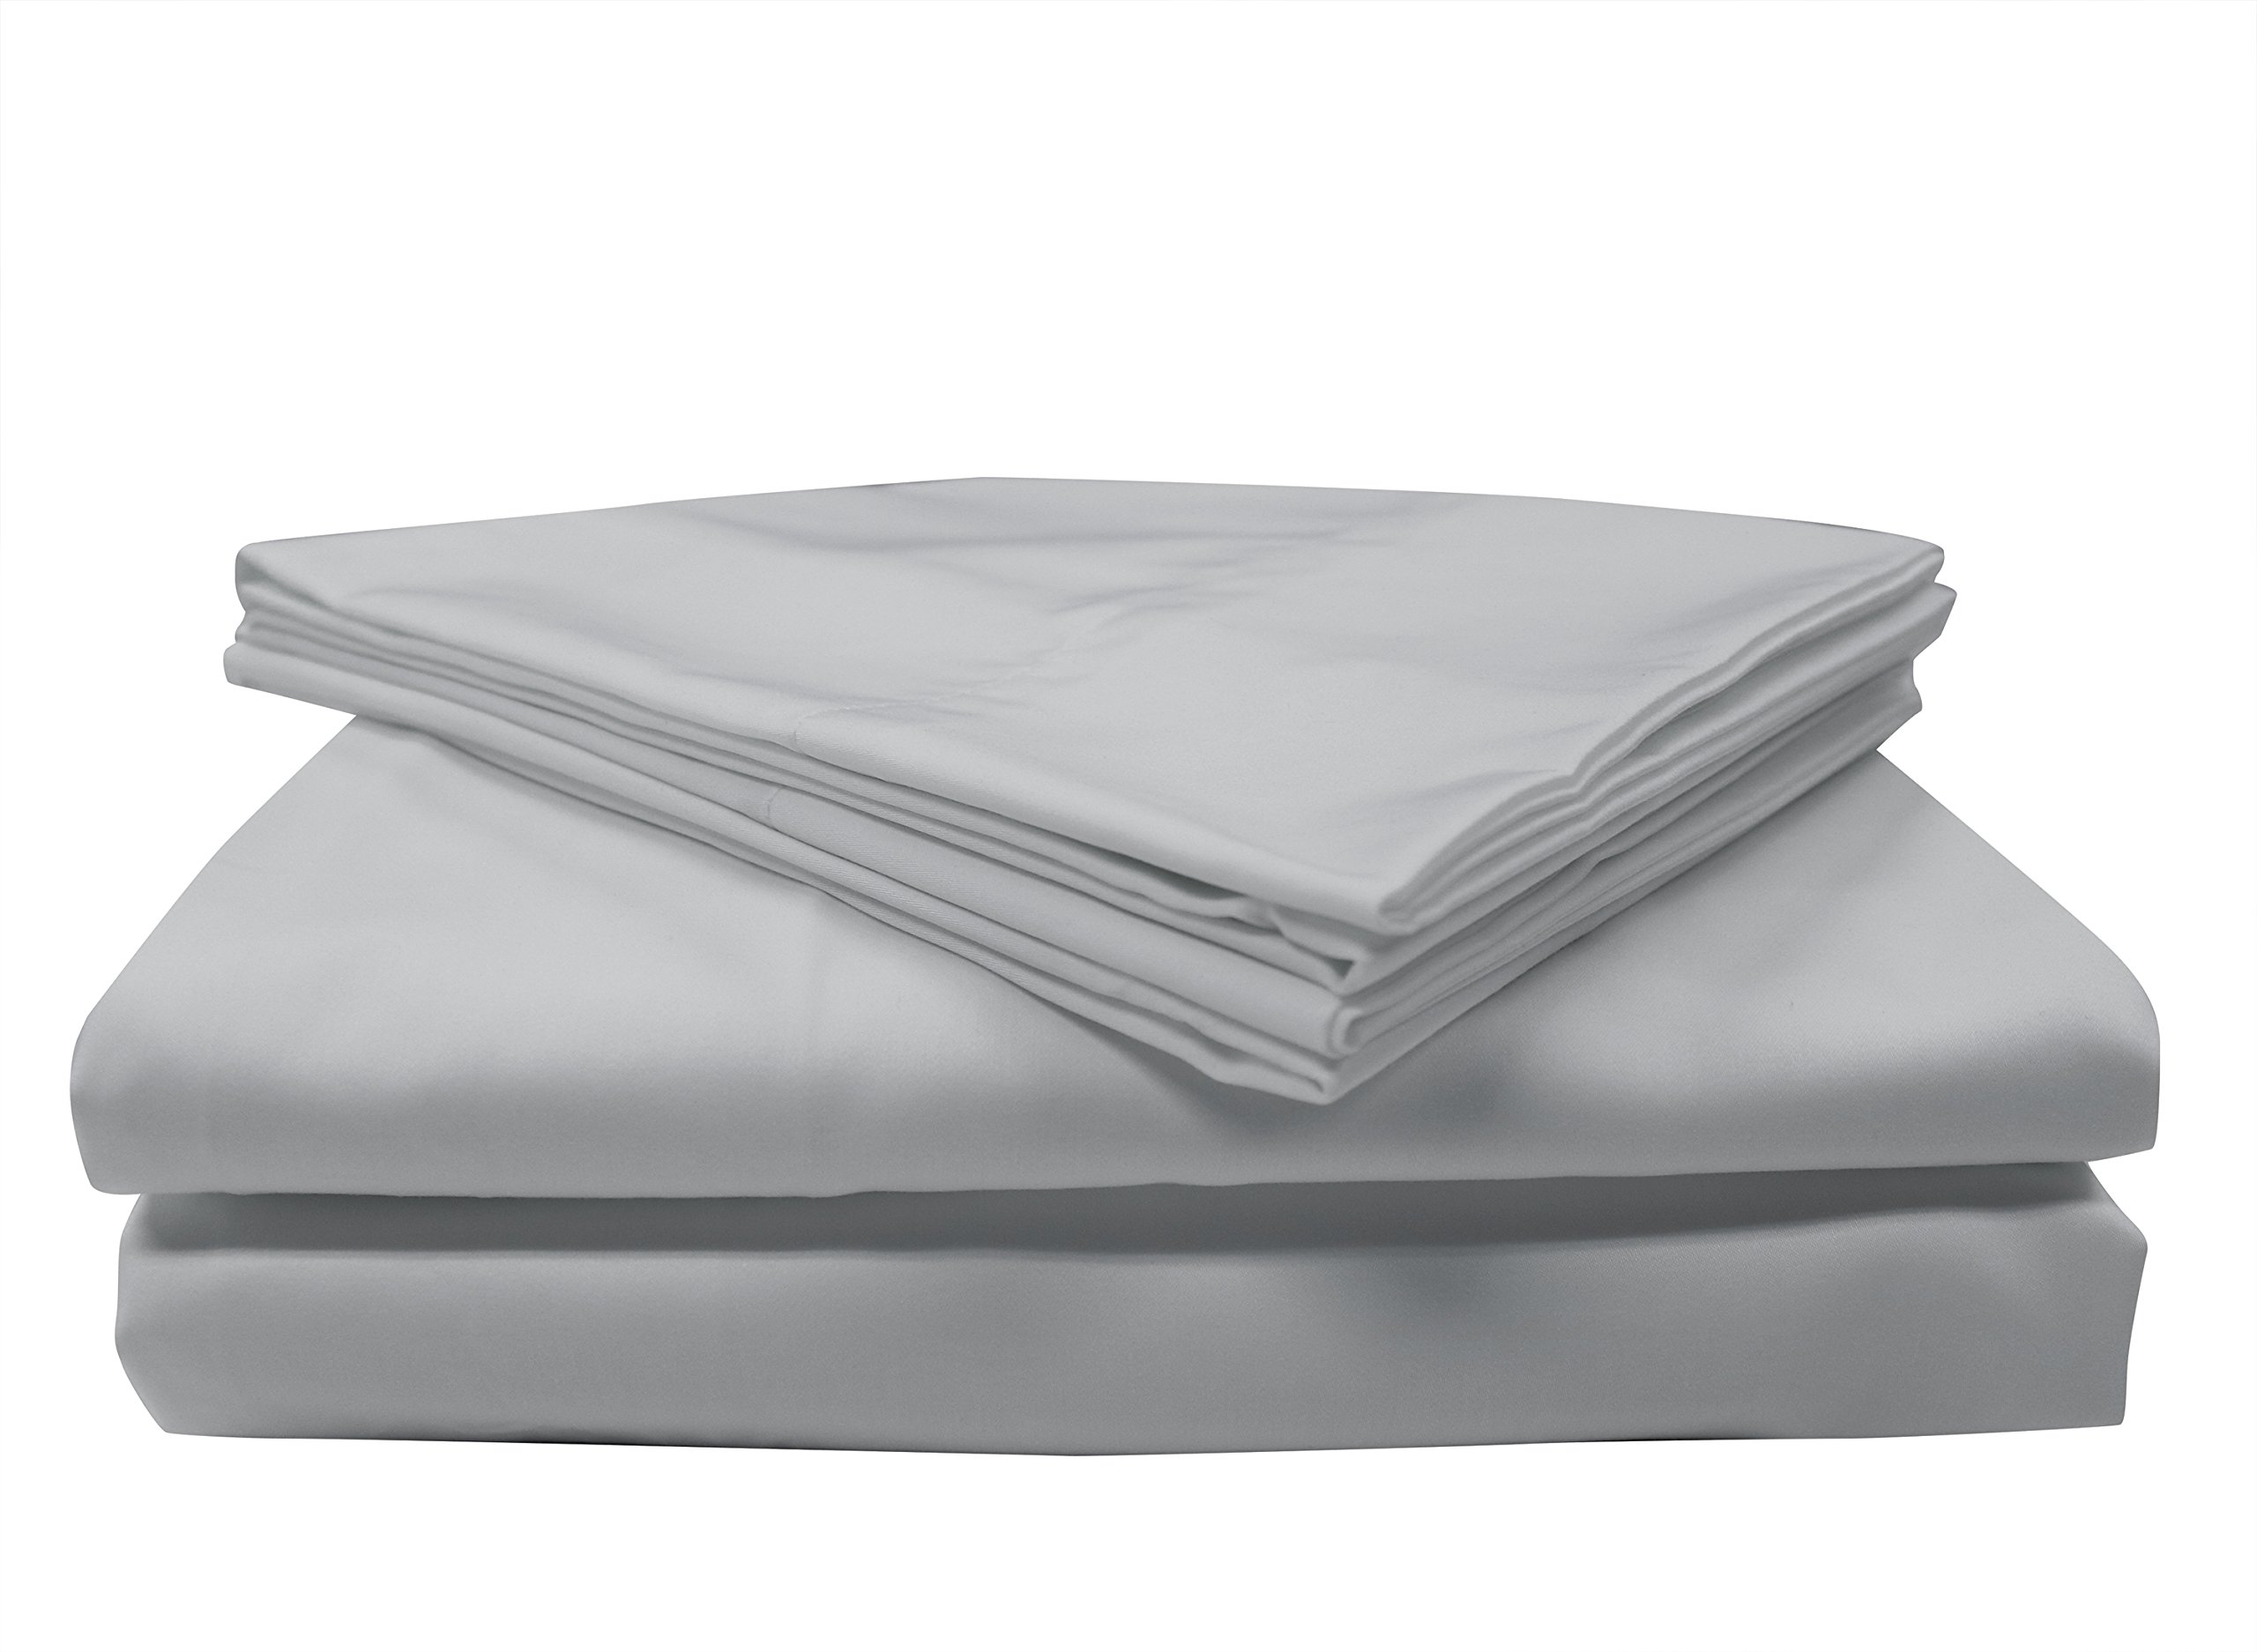 Mytex 400TCCWLCSS 400TC Wrinkle-Less Cotton Plus Coolest Comfort with Nanotechnology Sheet Set King, Silver